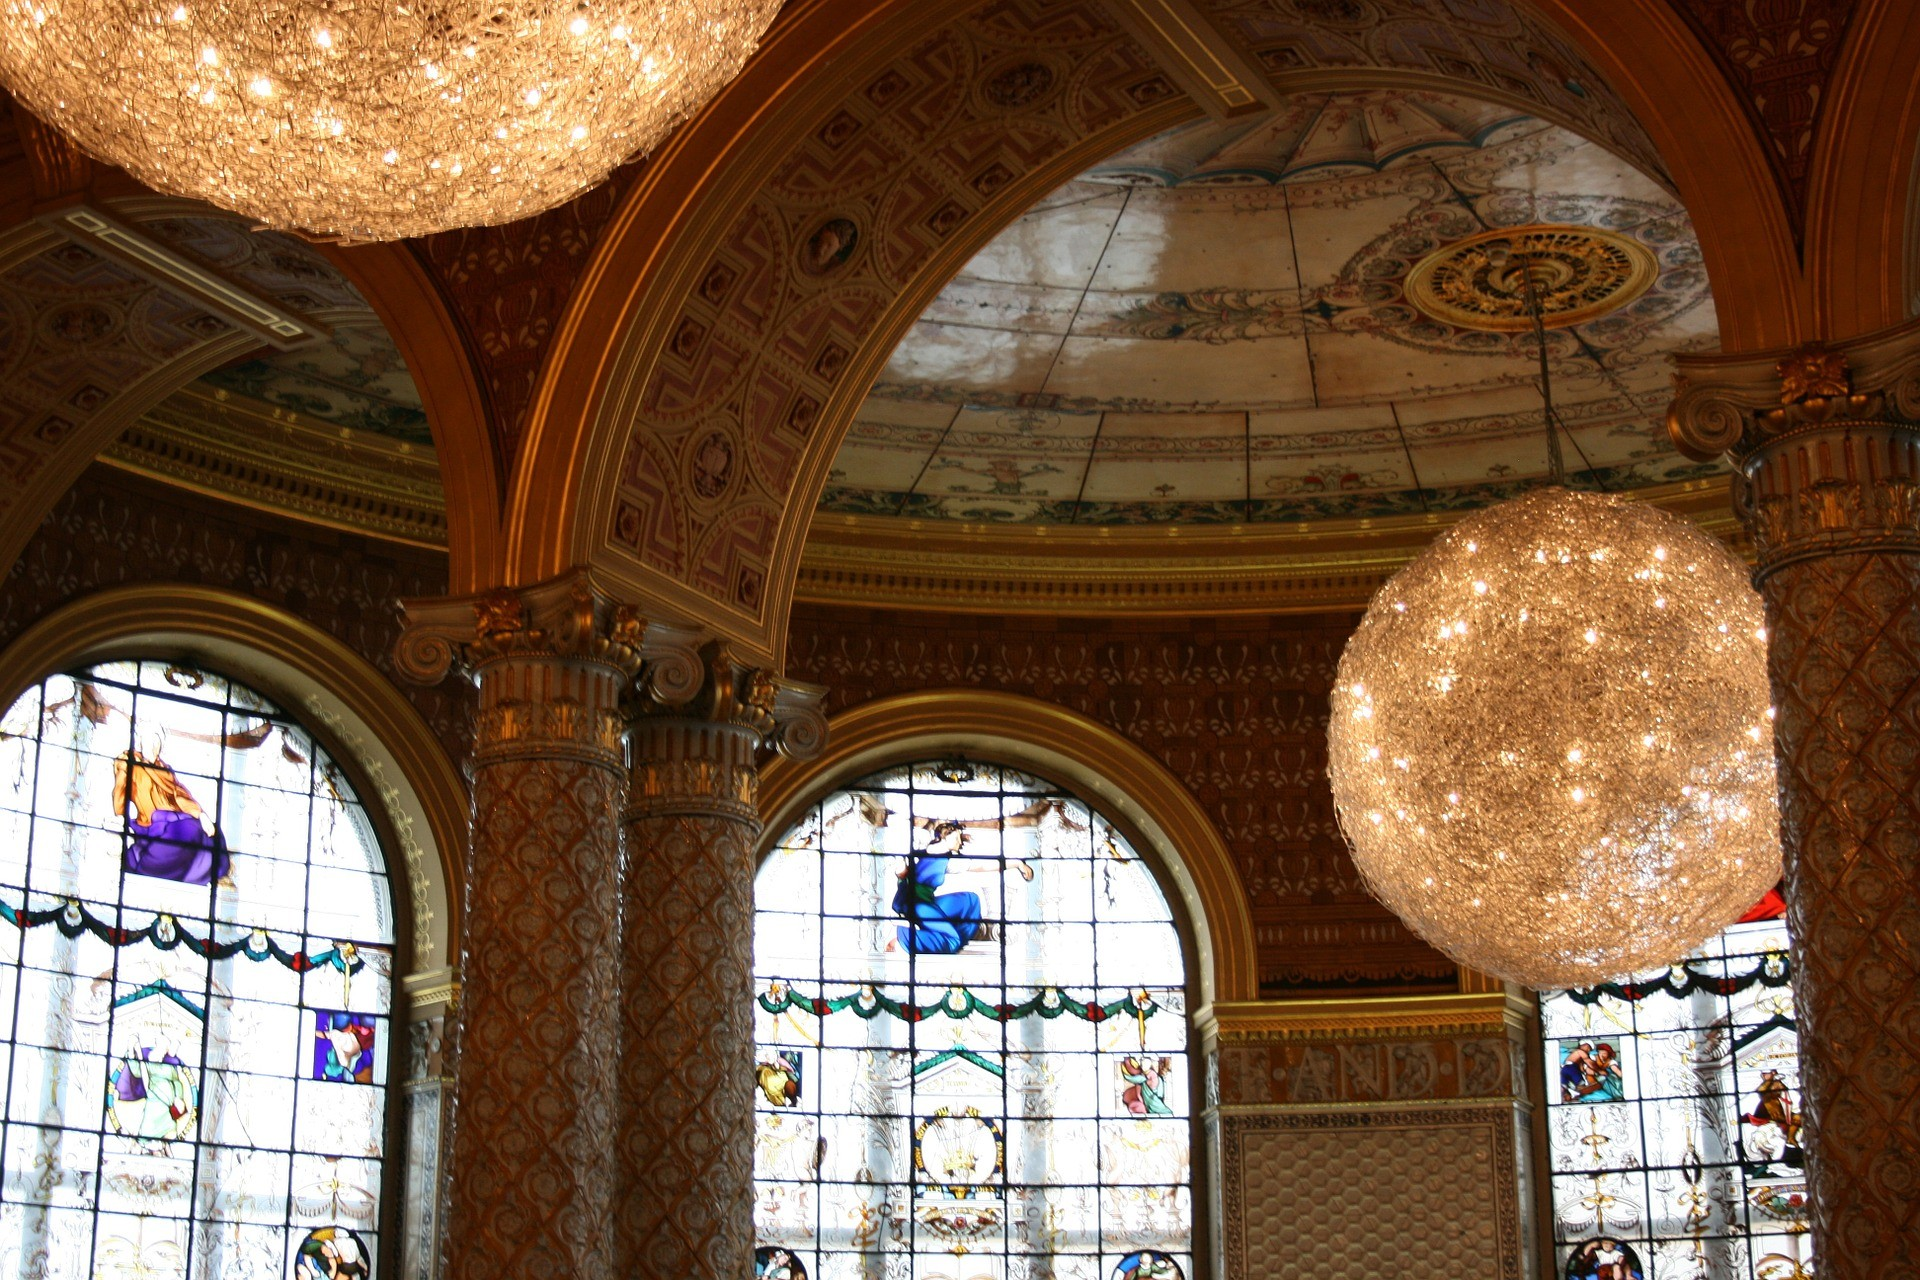 Victoria and Albert (V&A) Museum, London: All year